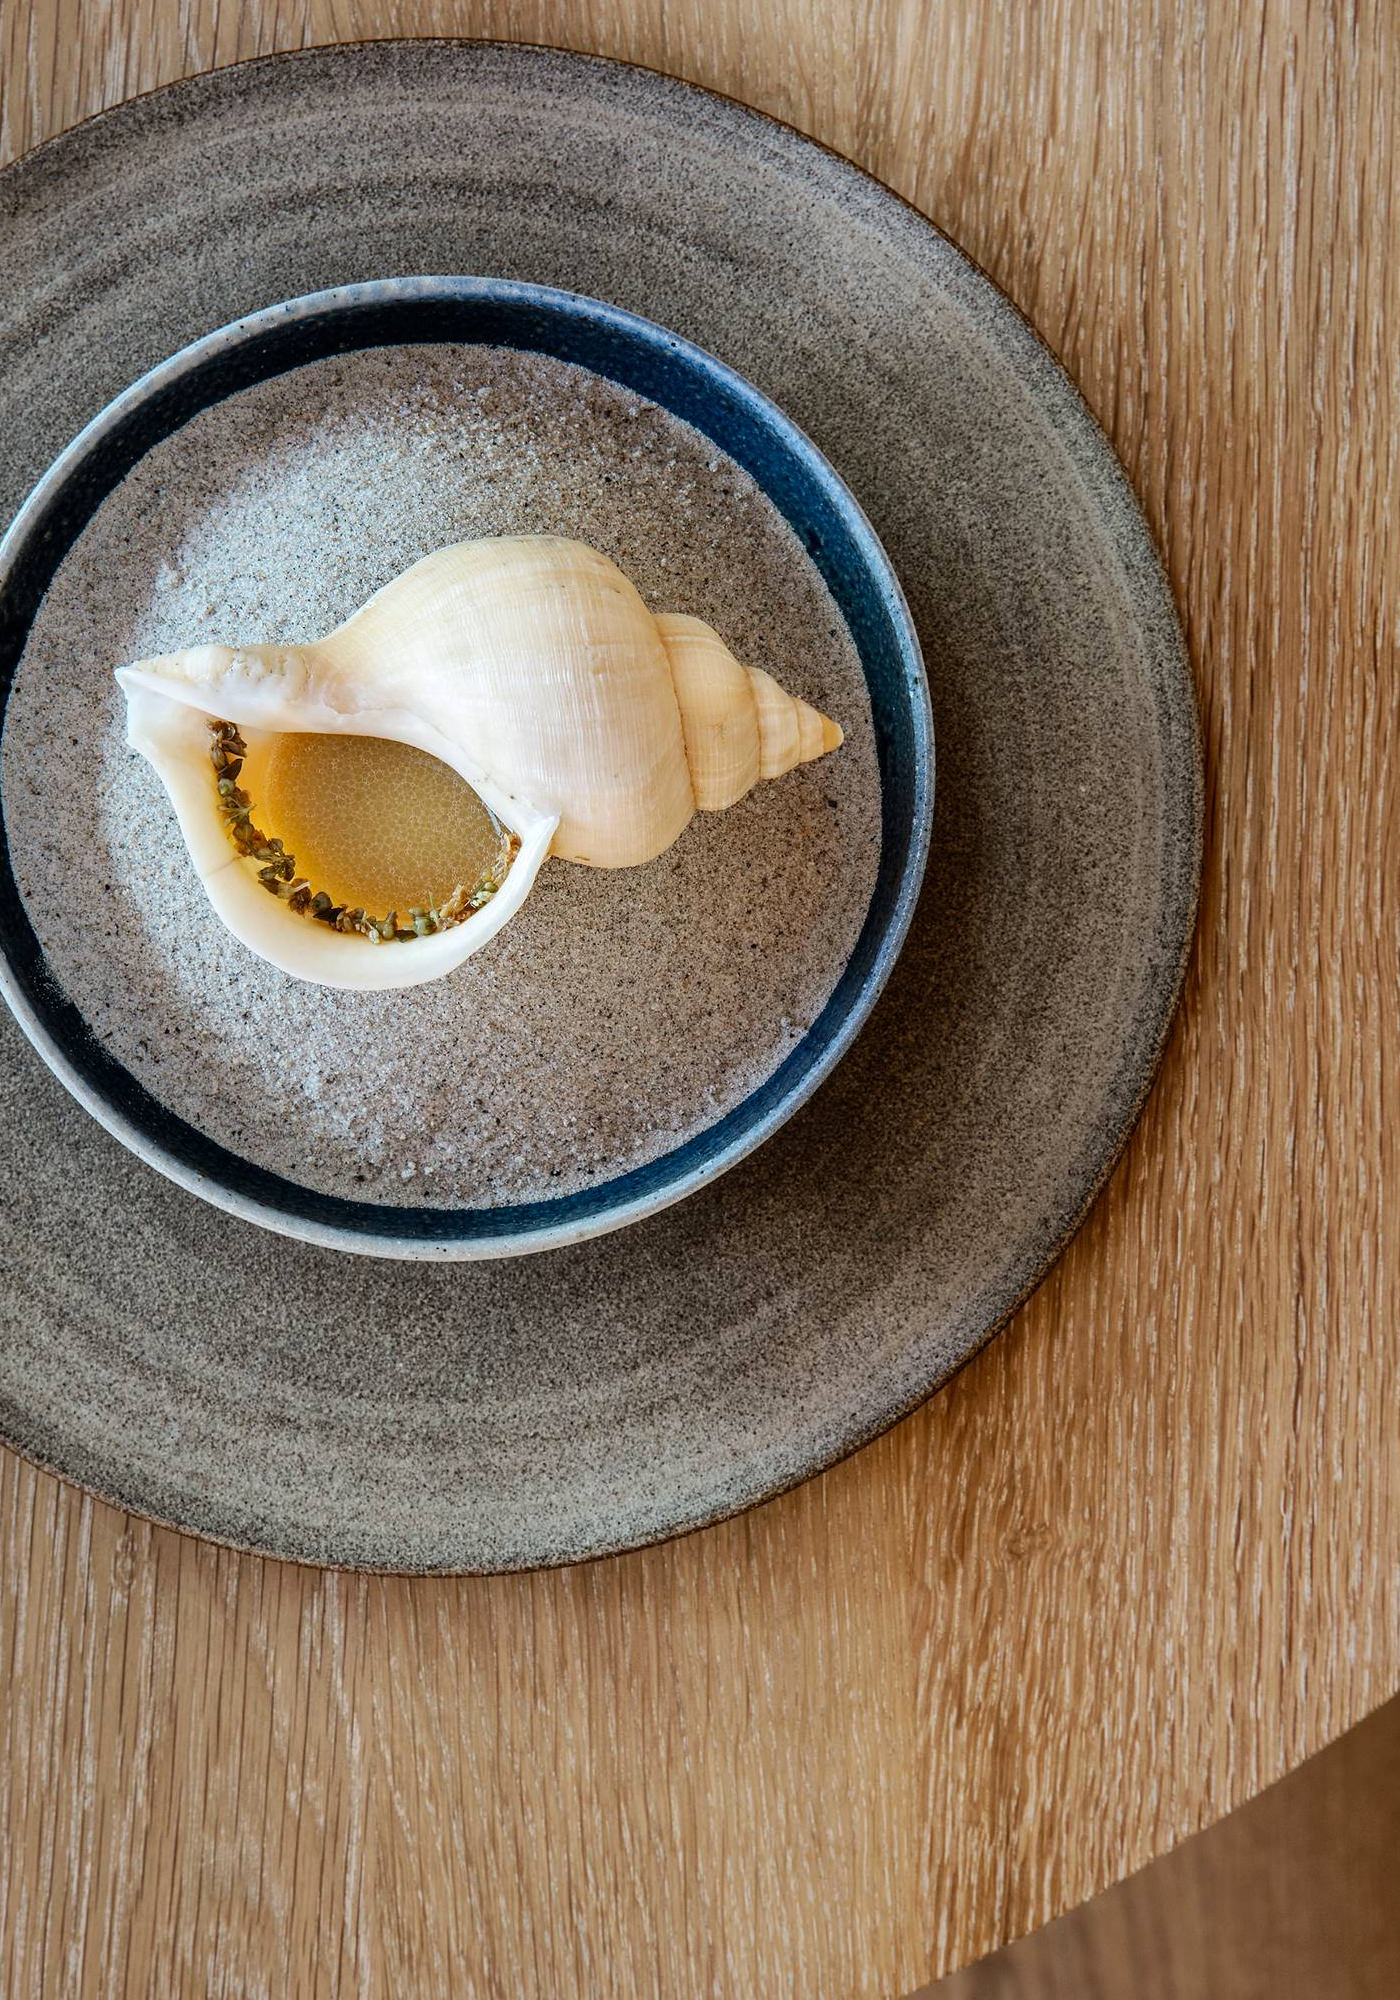 City Guide Copenhague Noma 2.0 Nouveau Restaurant René Redzepi